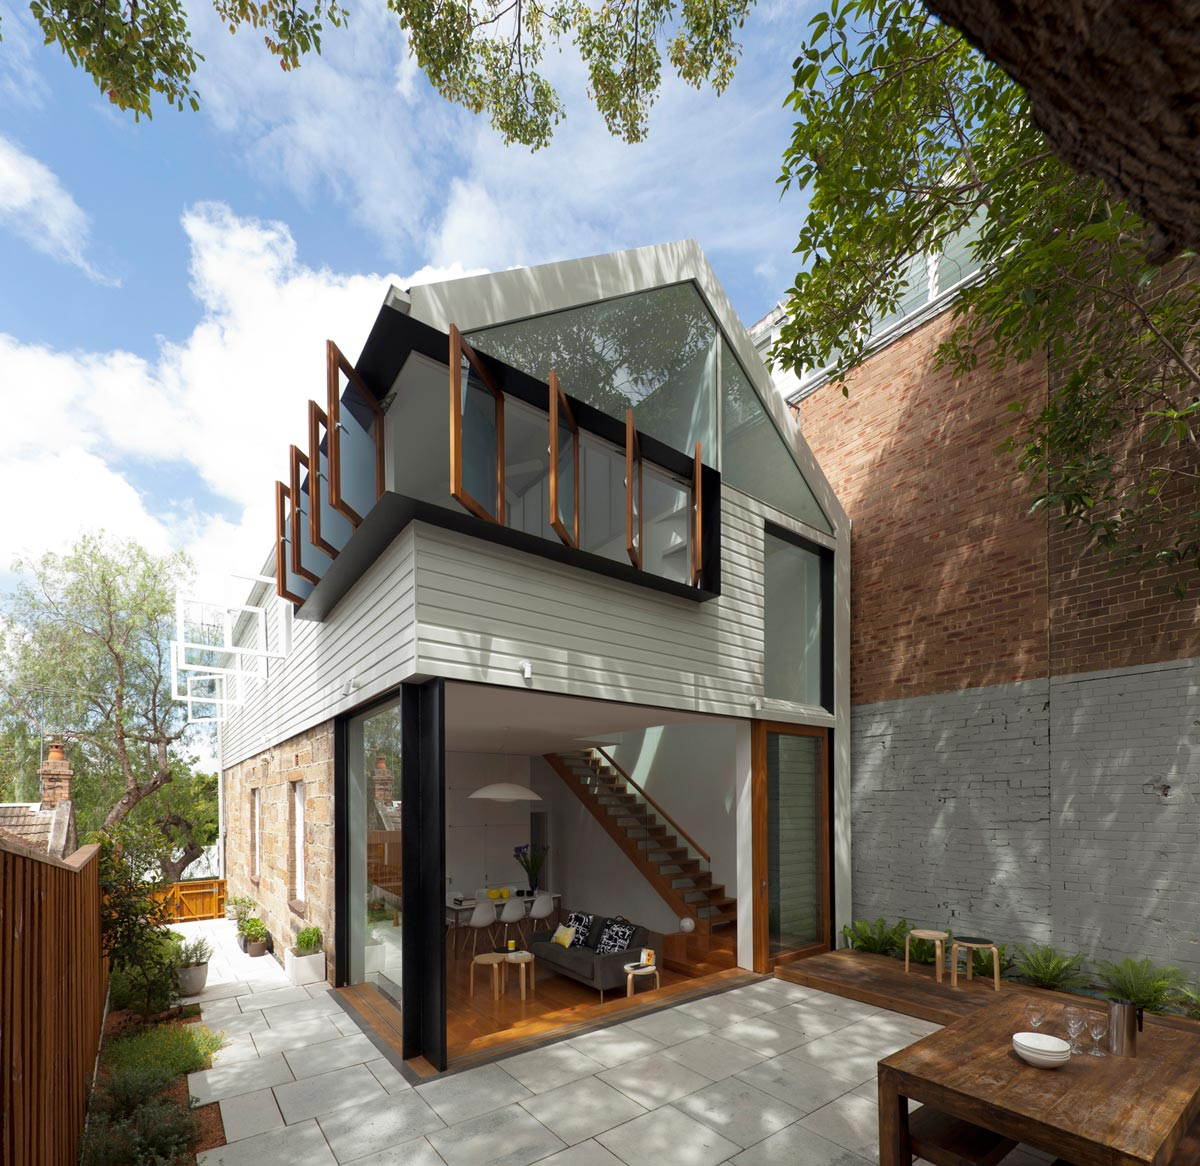 Elliott Ripper House, Australia / Christopher Polly Architect